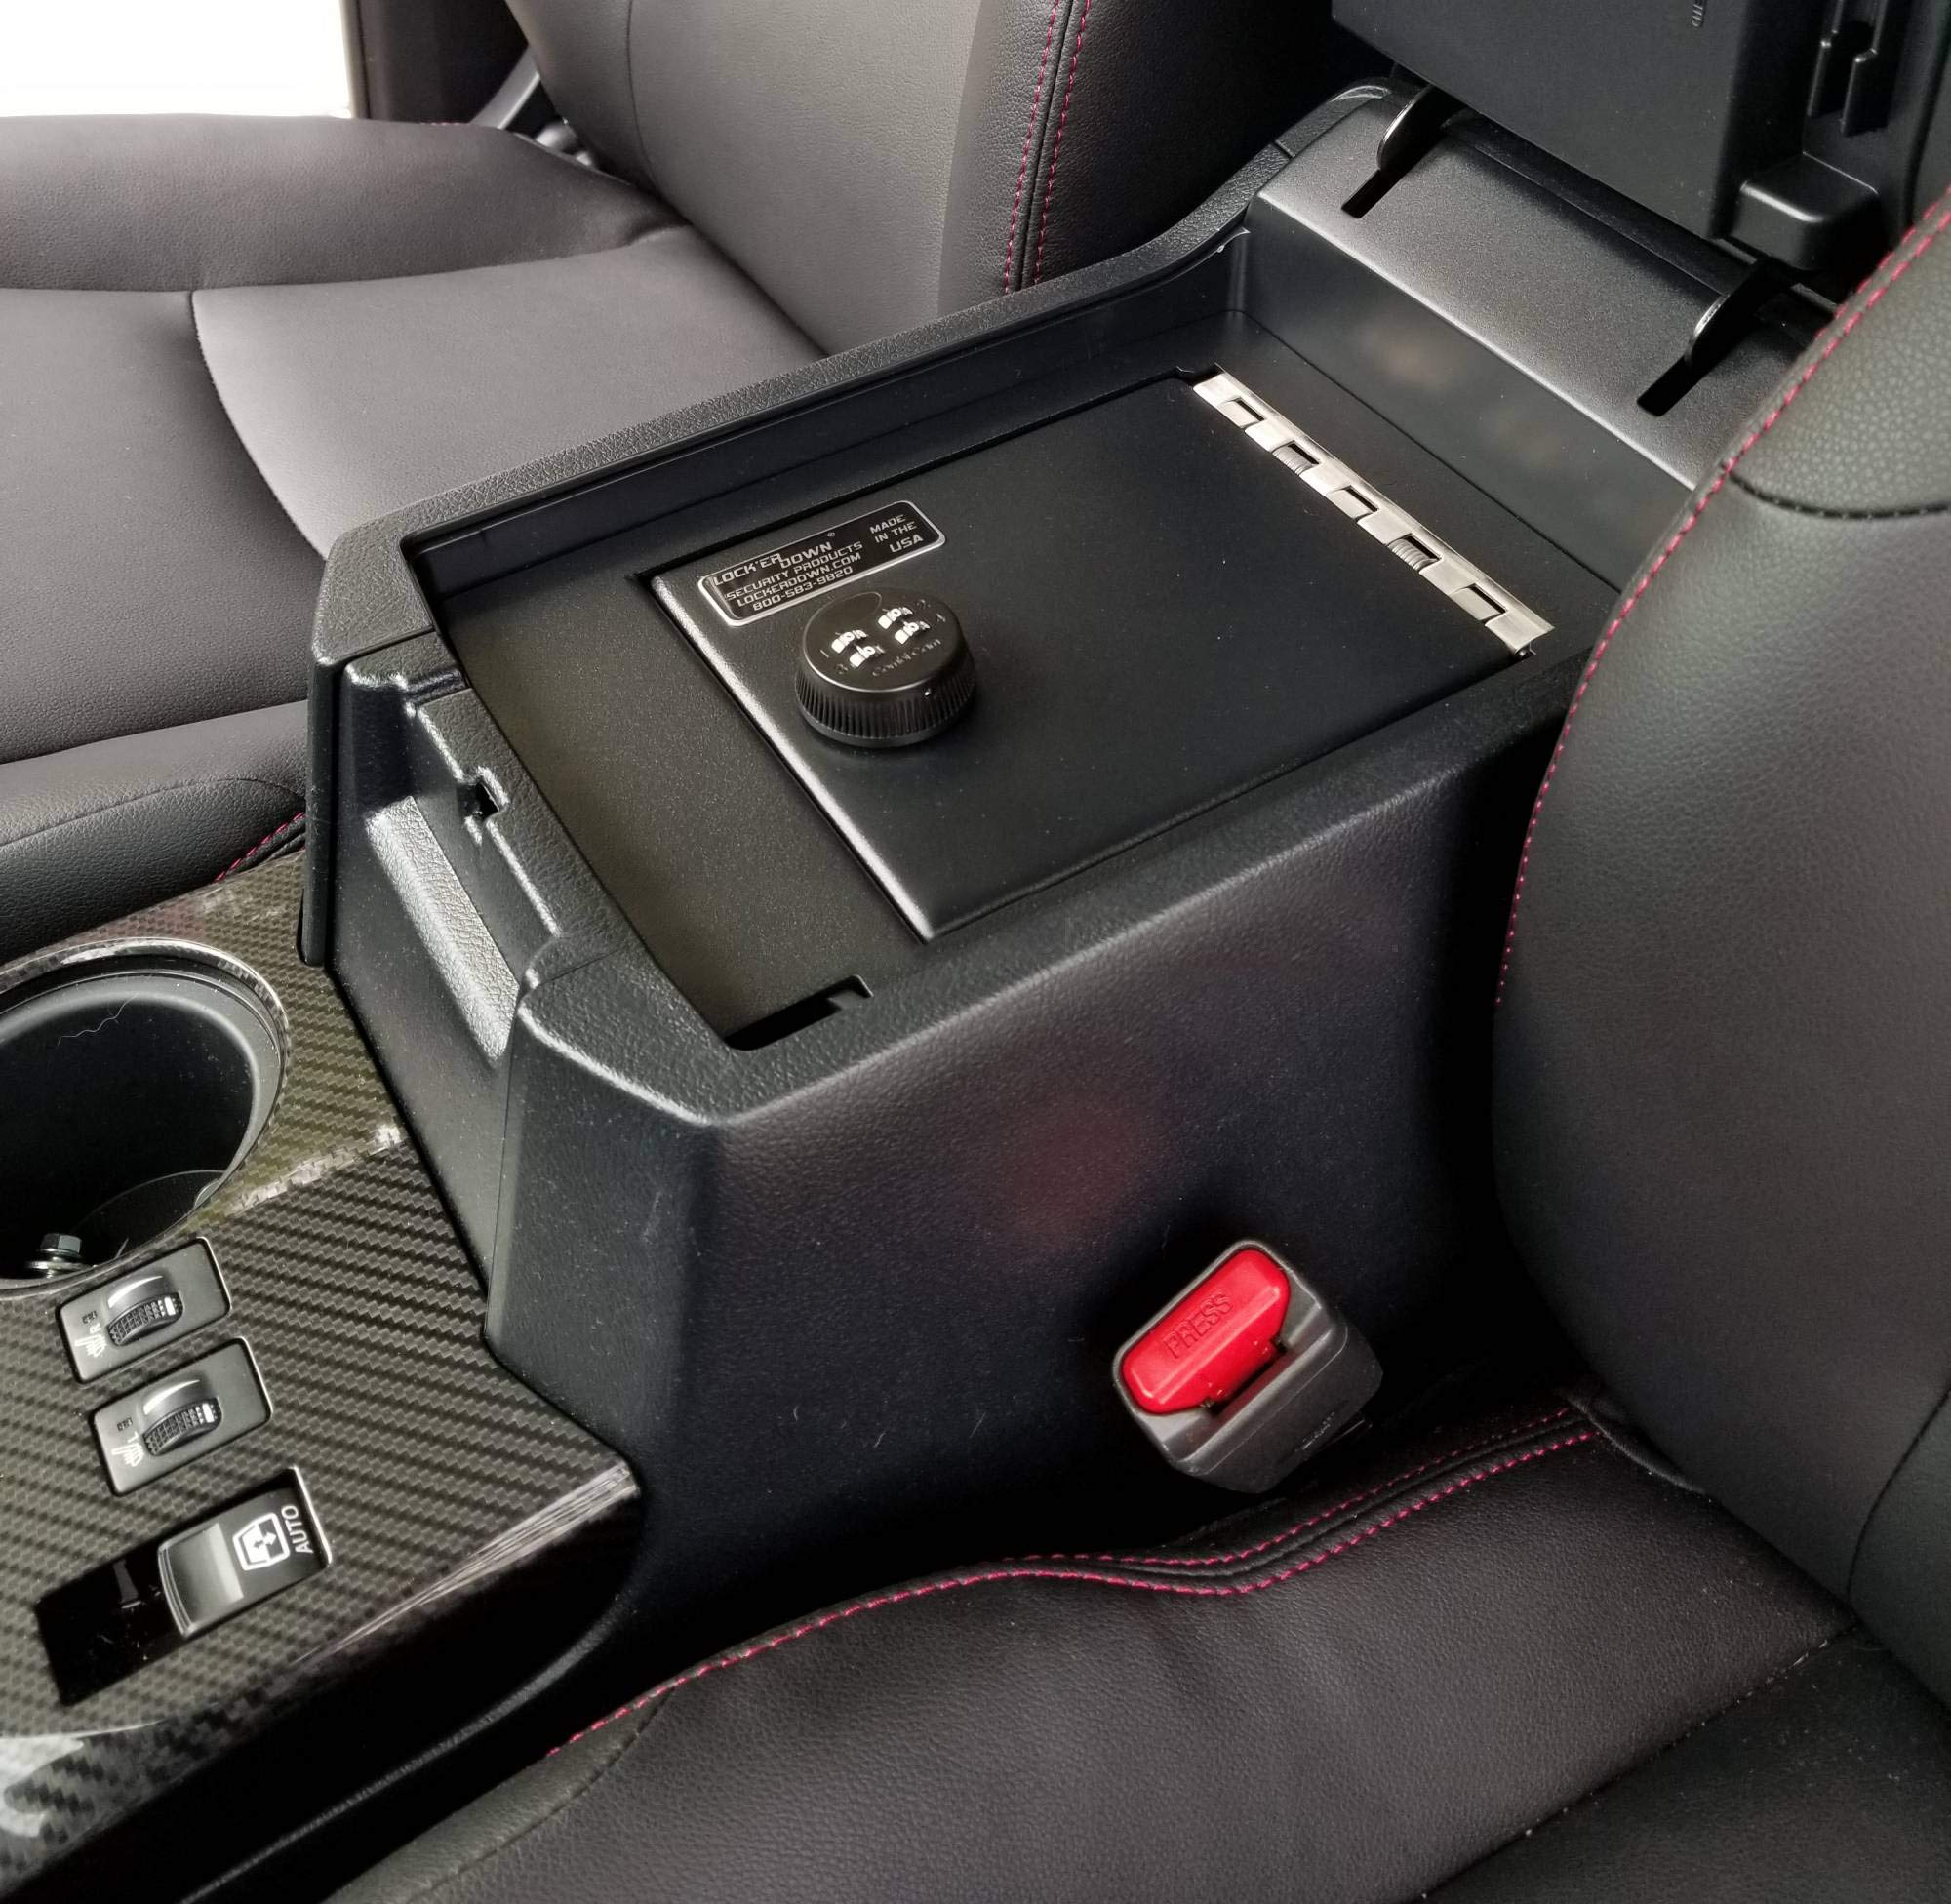 Lock'er Down Console Safe with 4 Digit Combo, Works with 2010 - 2019 Toyota 4Runner by Lock'er Down® (Image #3)